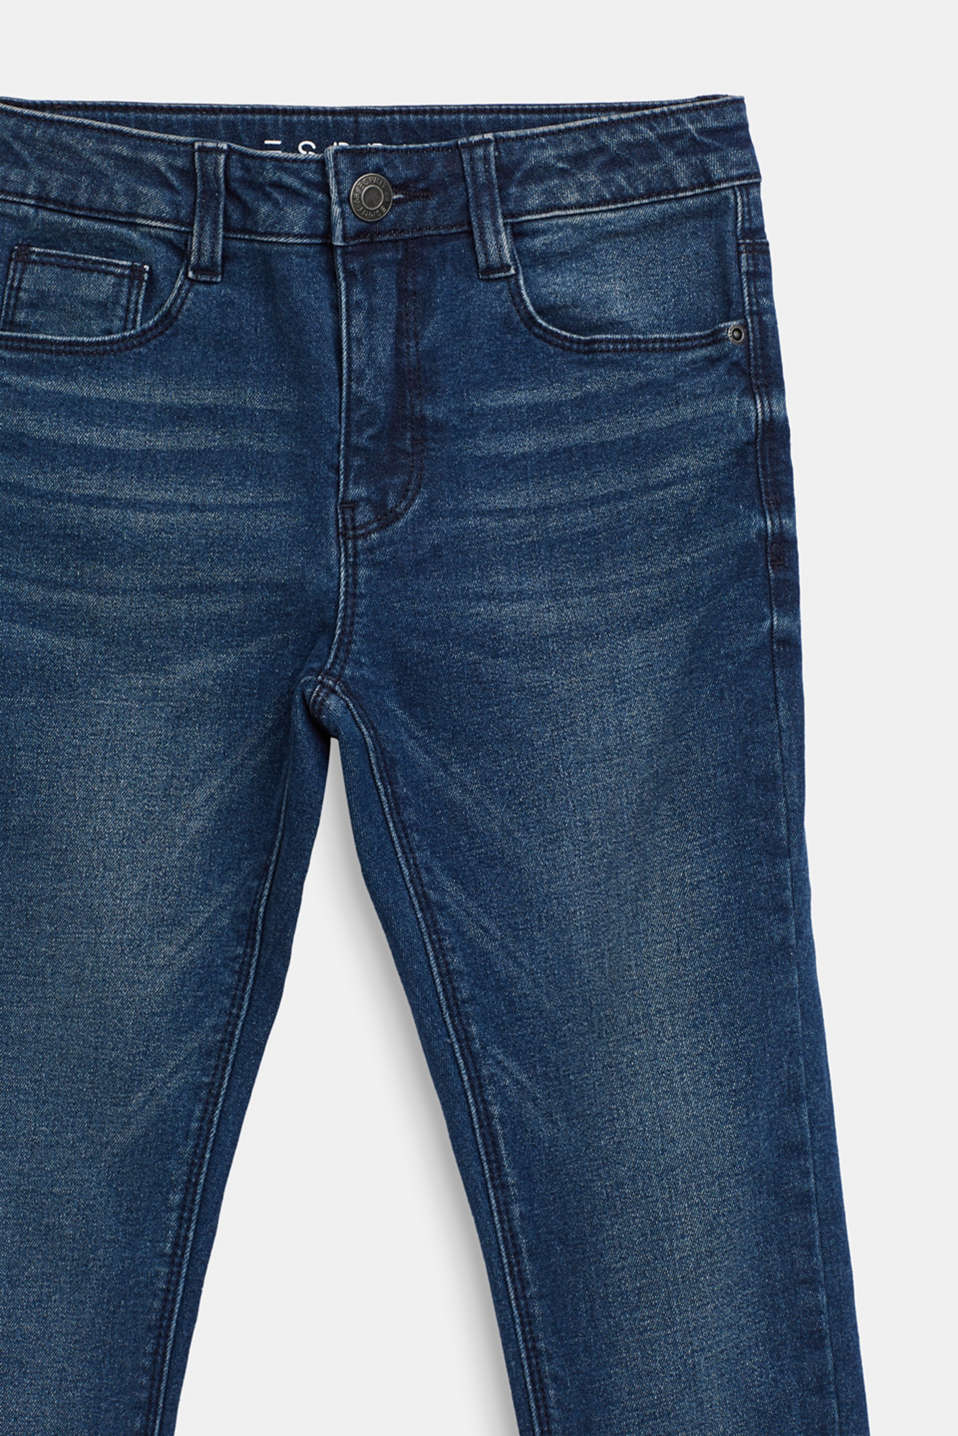 Stretch jeans with soft lining, LCDARK INDIGO DE, detail image number 2